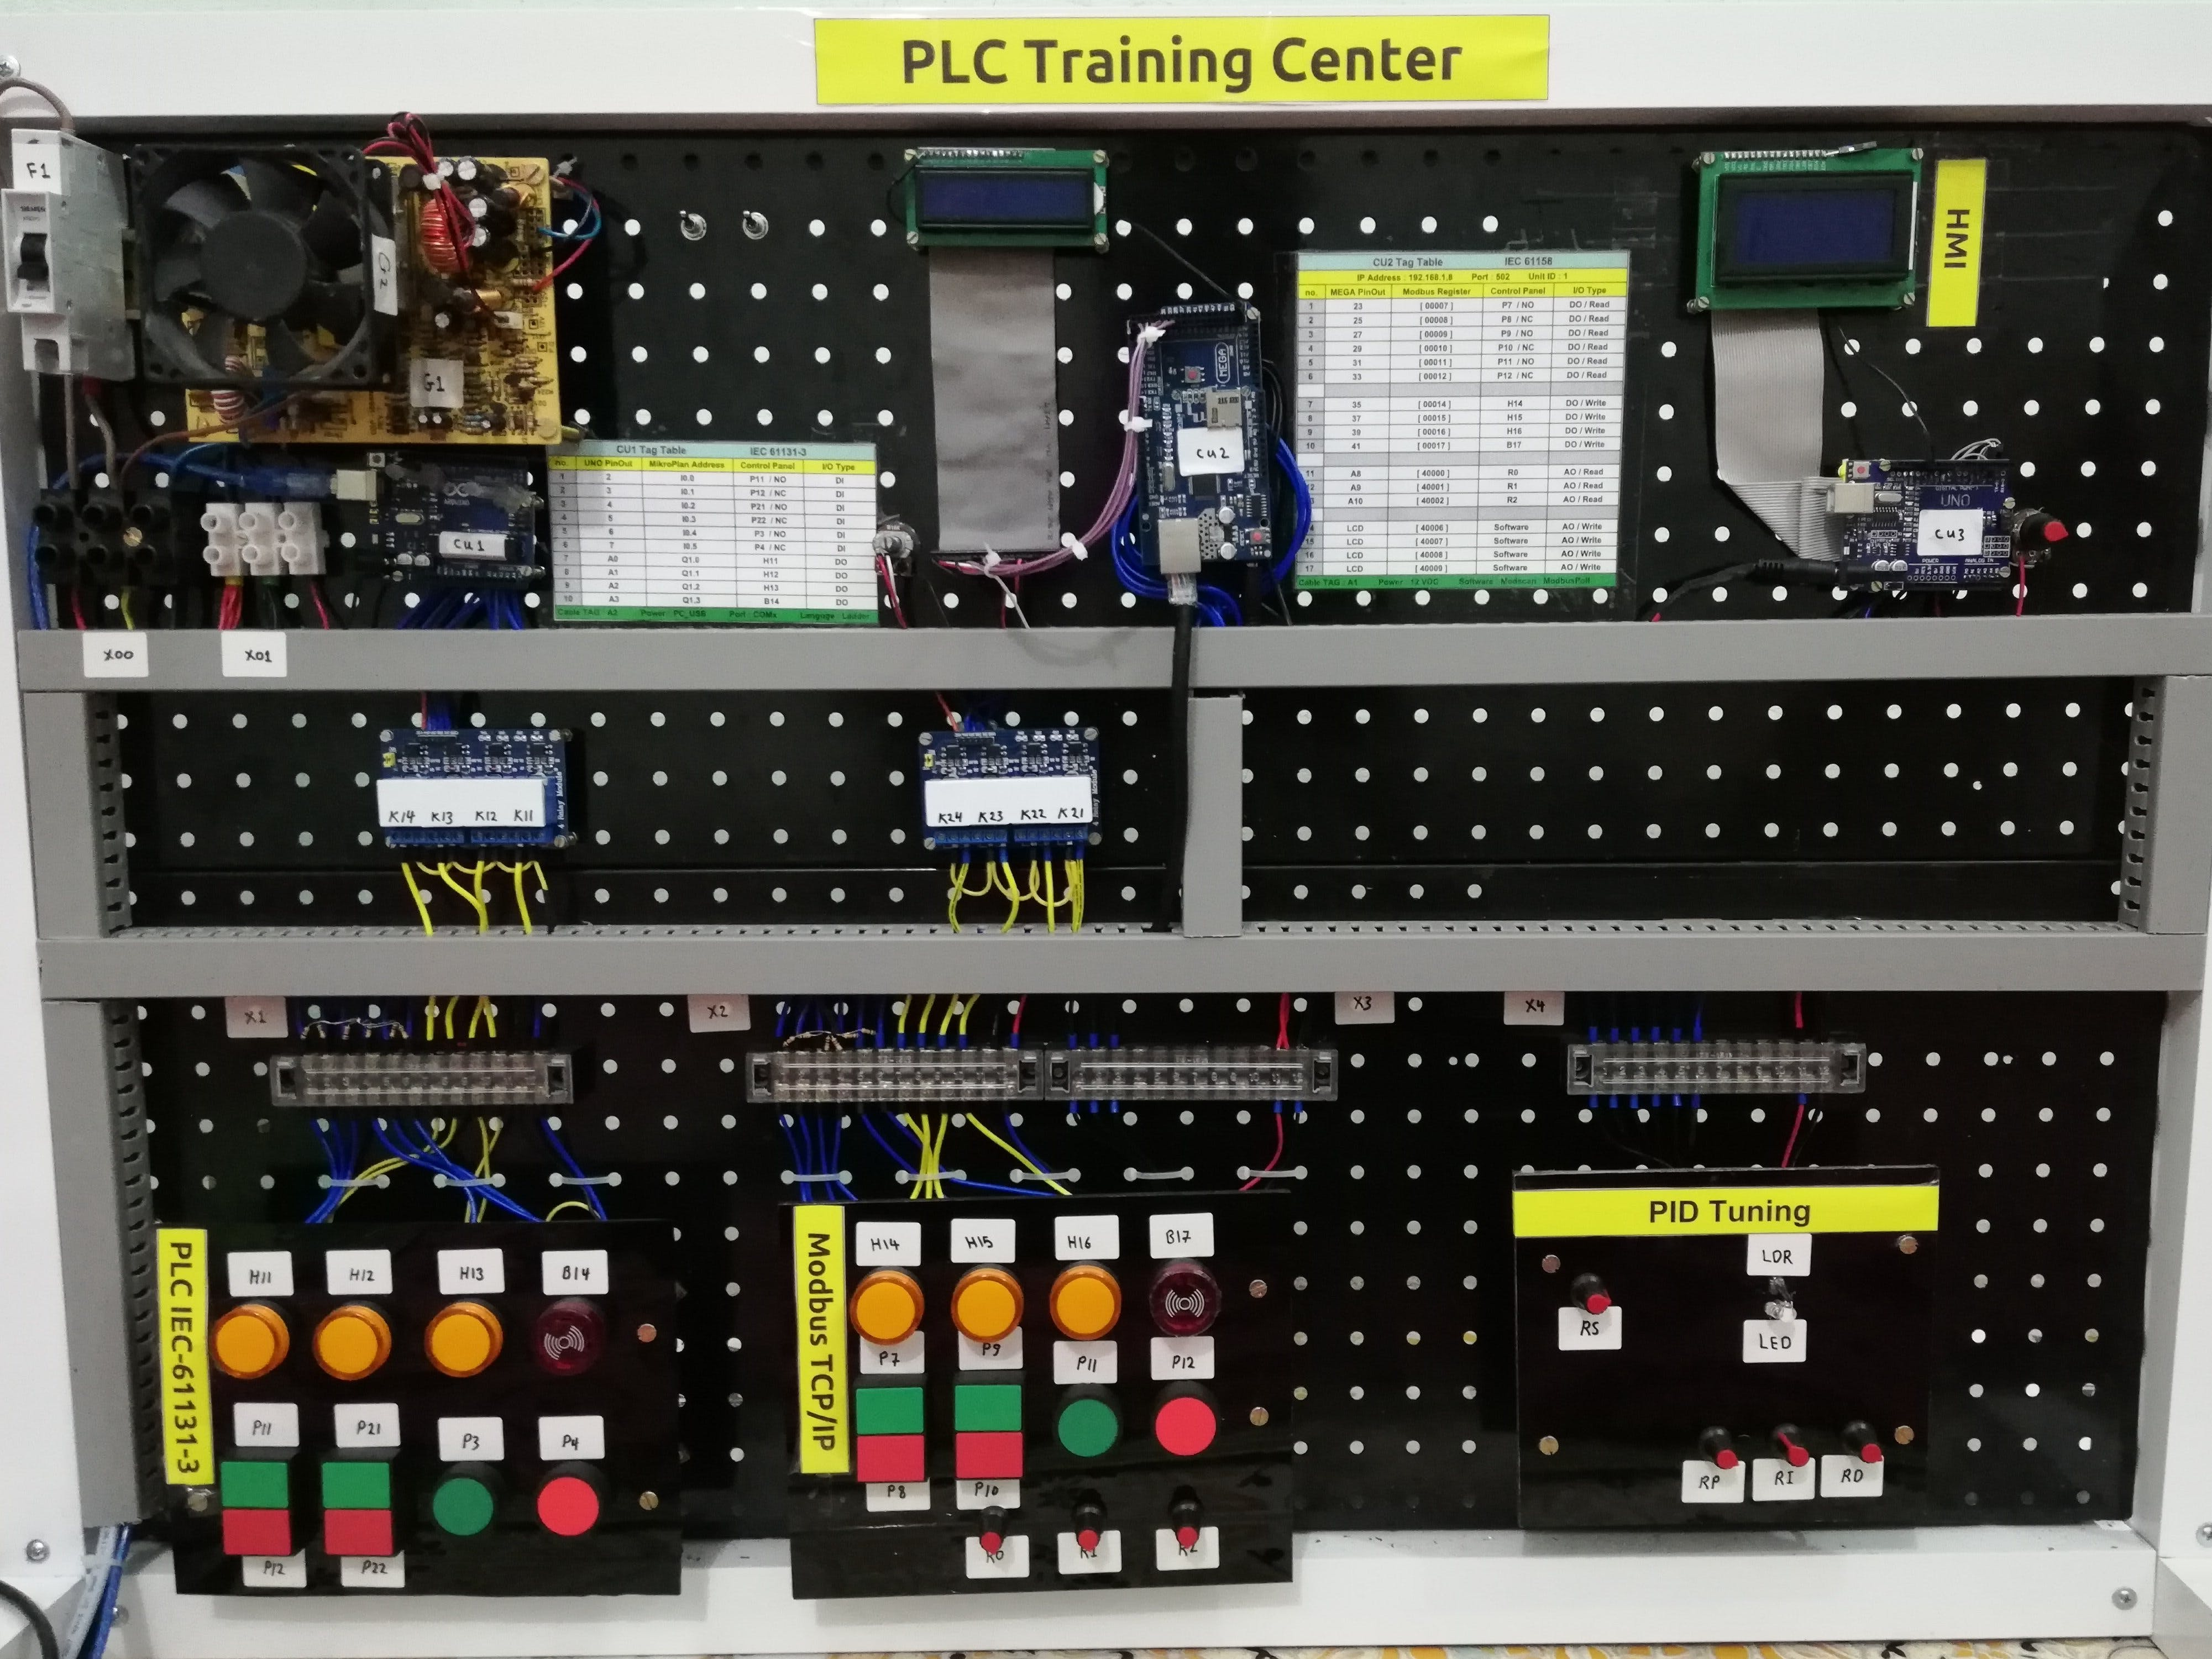 PLC Training Center